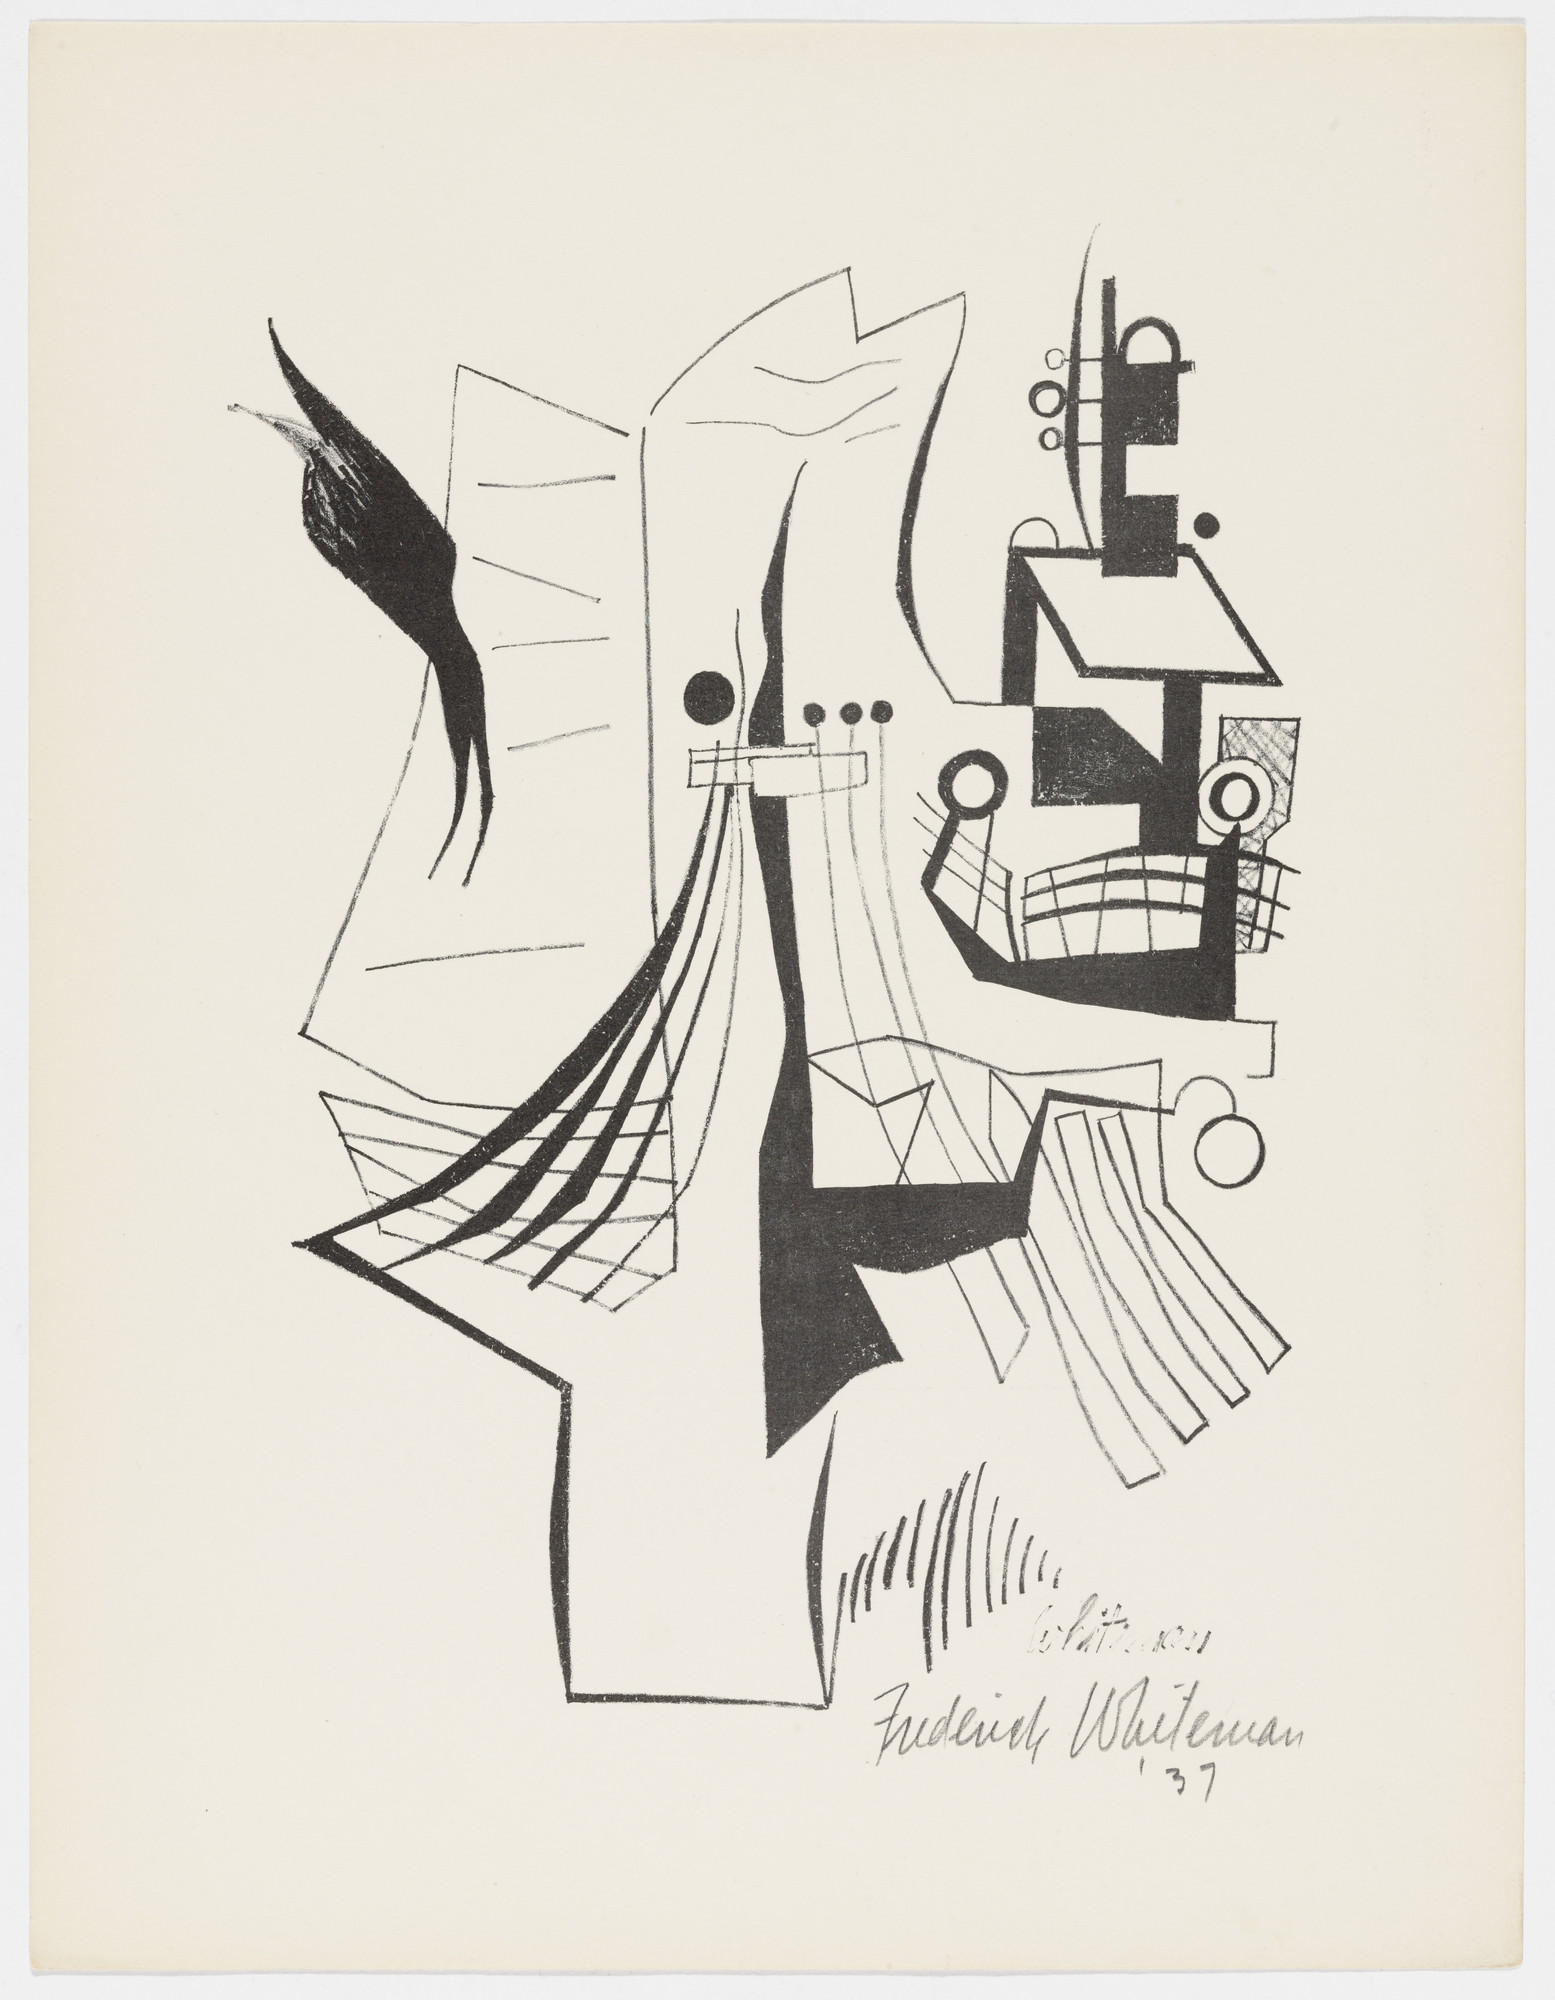 Fredrick J. Whiteman. Untitled from American Abstract Artists. 1937